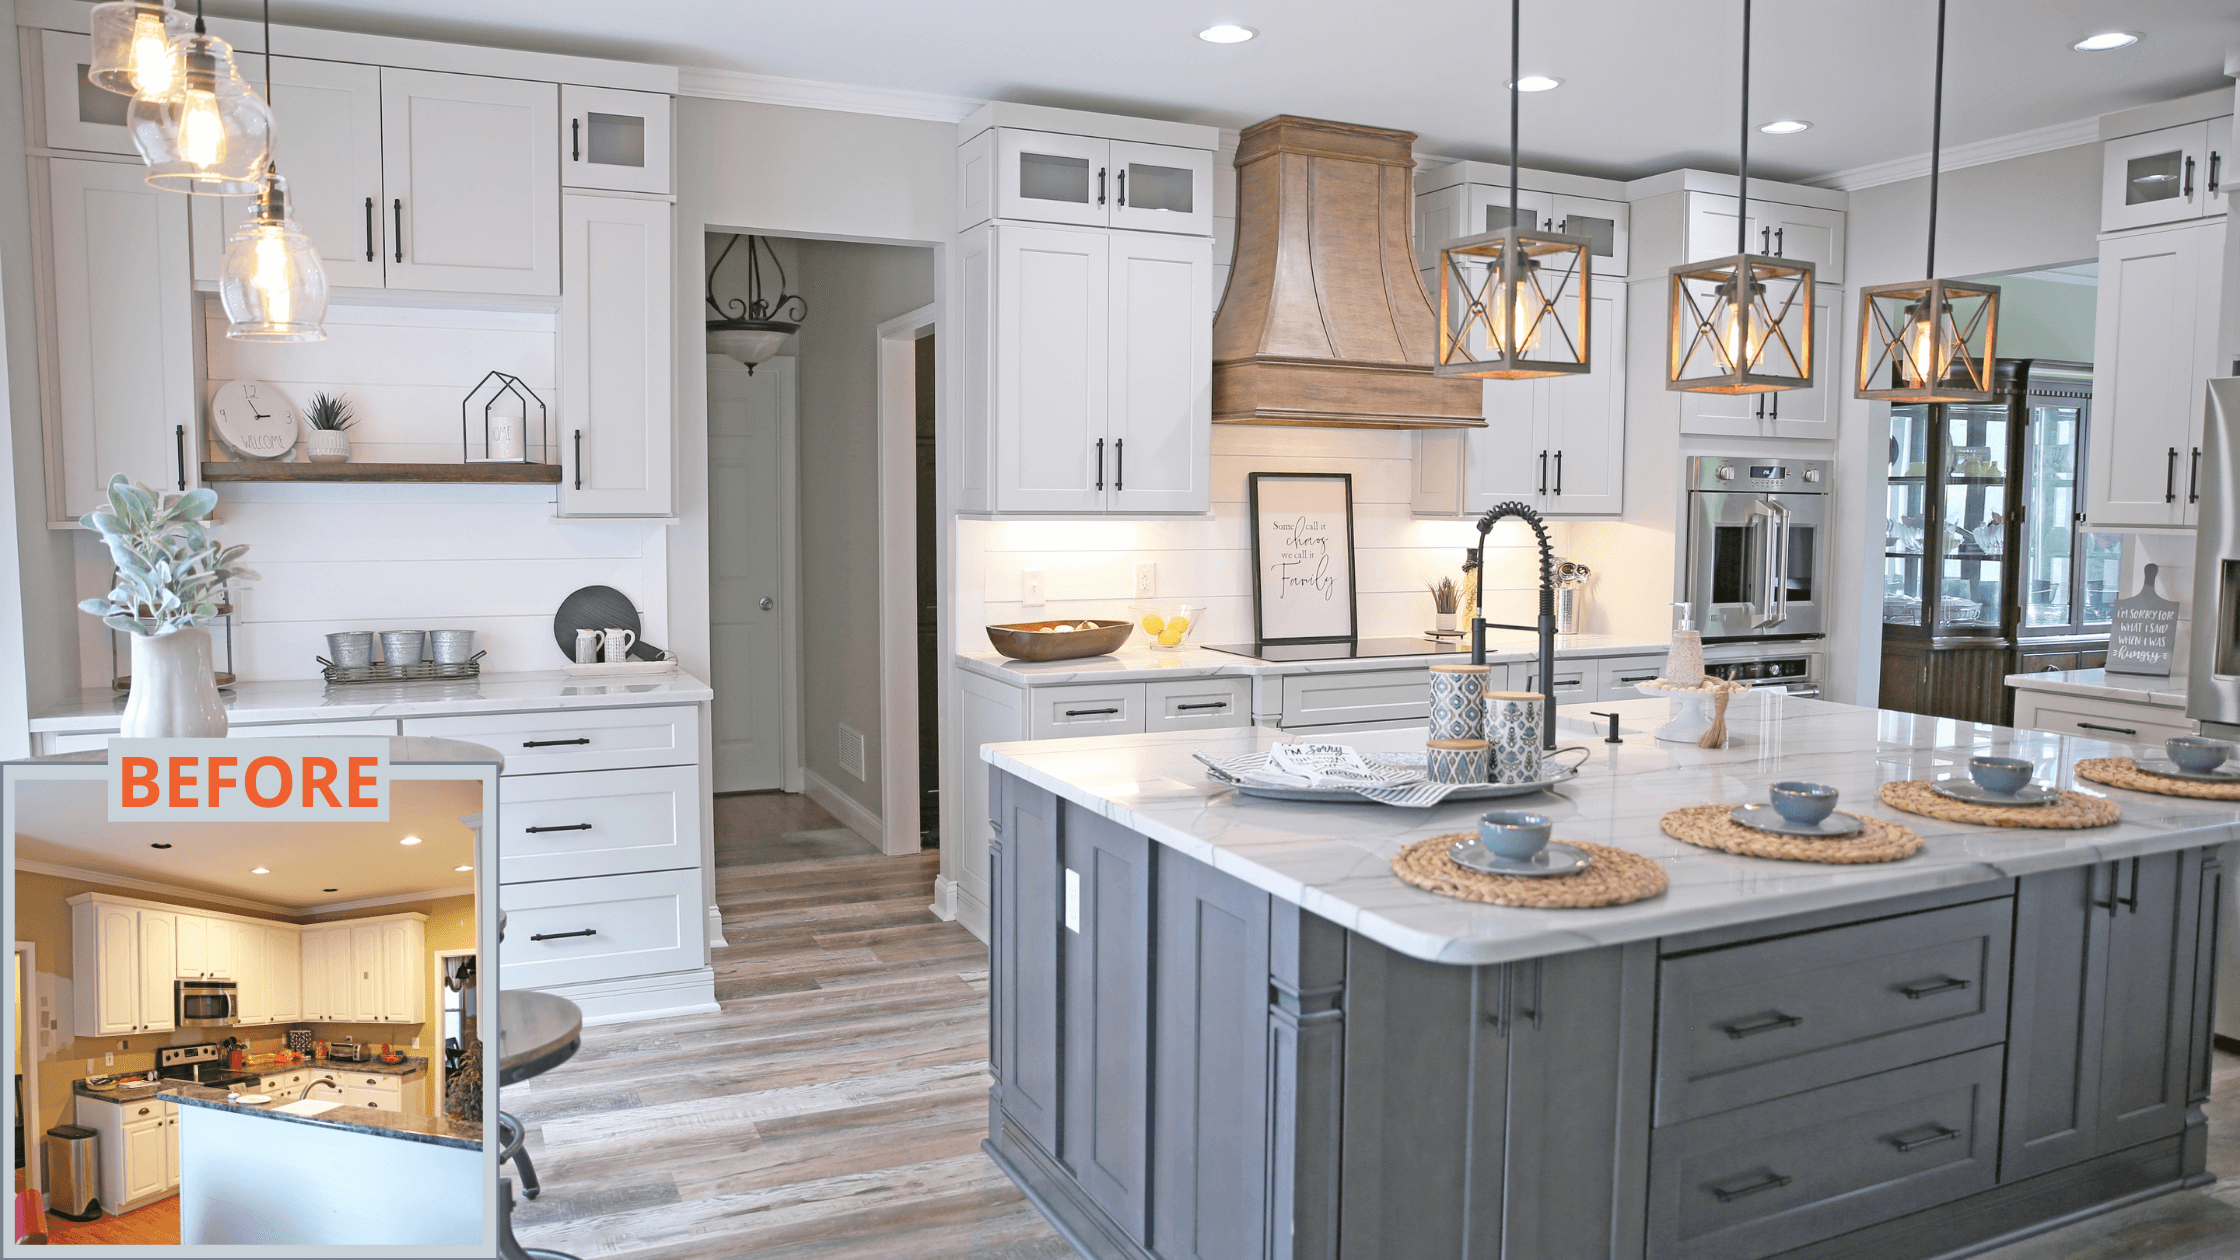 7 Common Kitchen Remodel Mistakes to Avoid